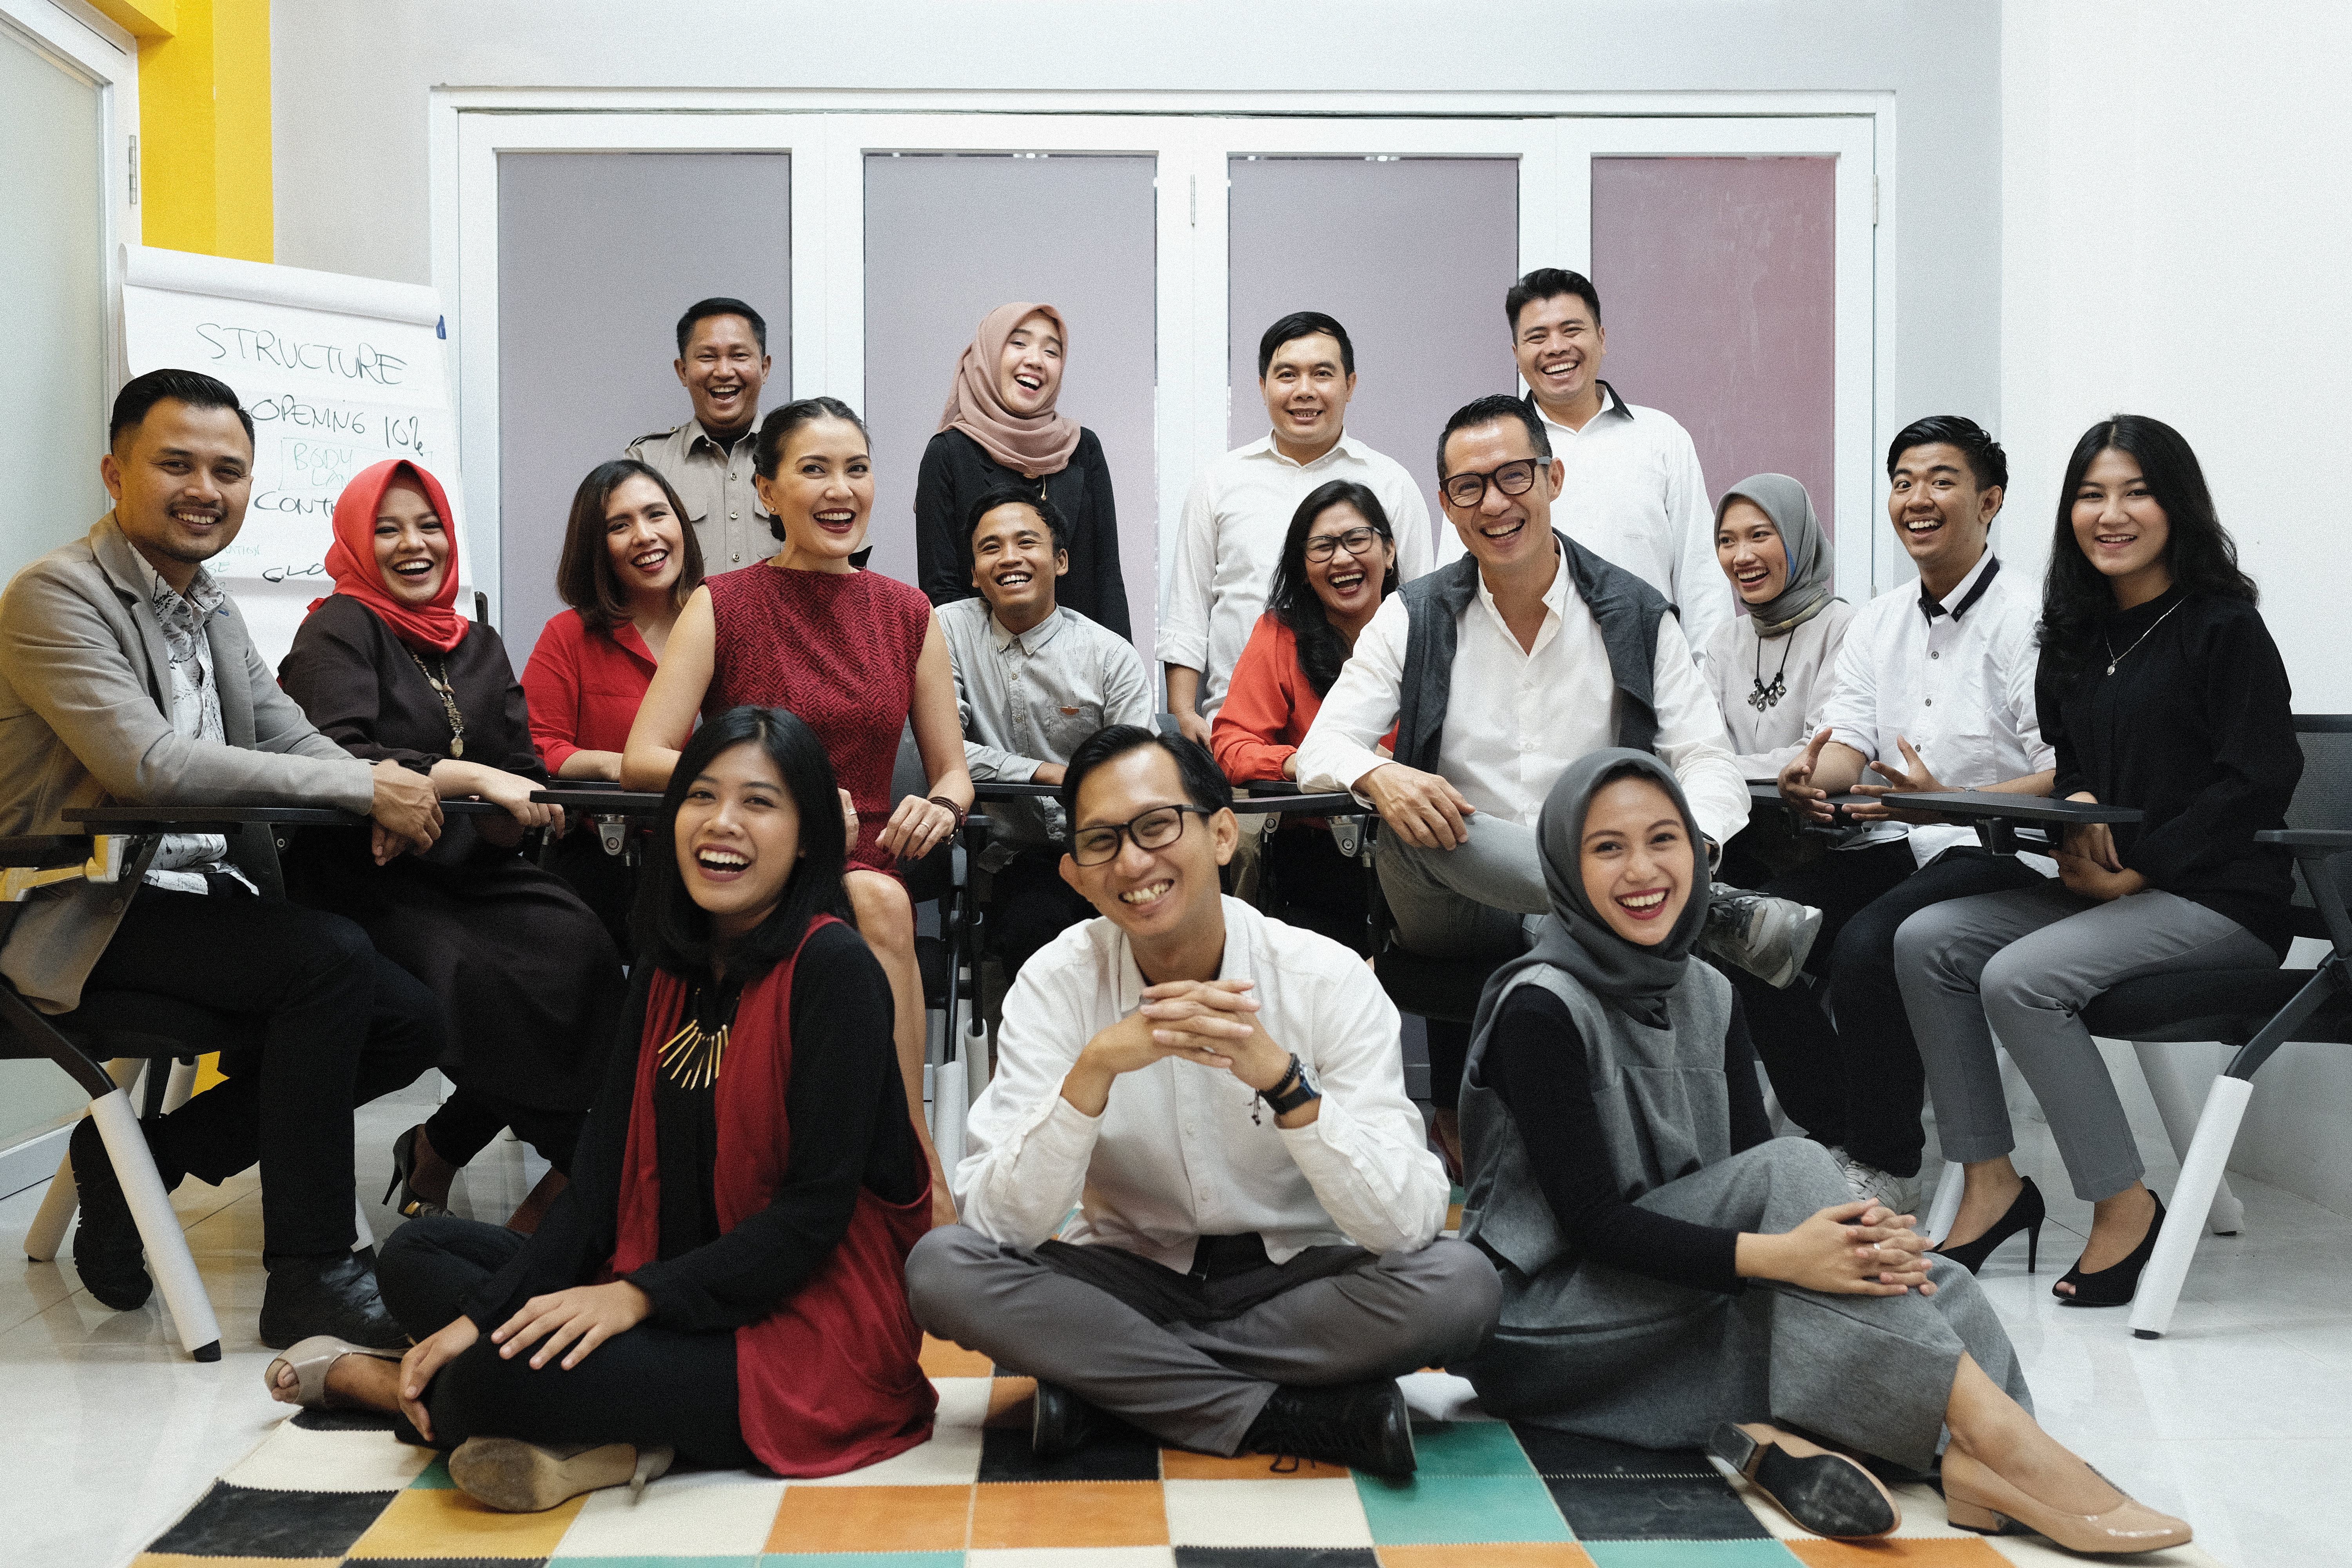 TalkInc, Indonesian company, Indonesian SMEs, Small Medium Enterprises, entertainment industry, ASEAN SMEs, ASEAN business, Southeast Asia Business